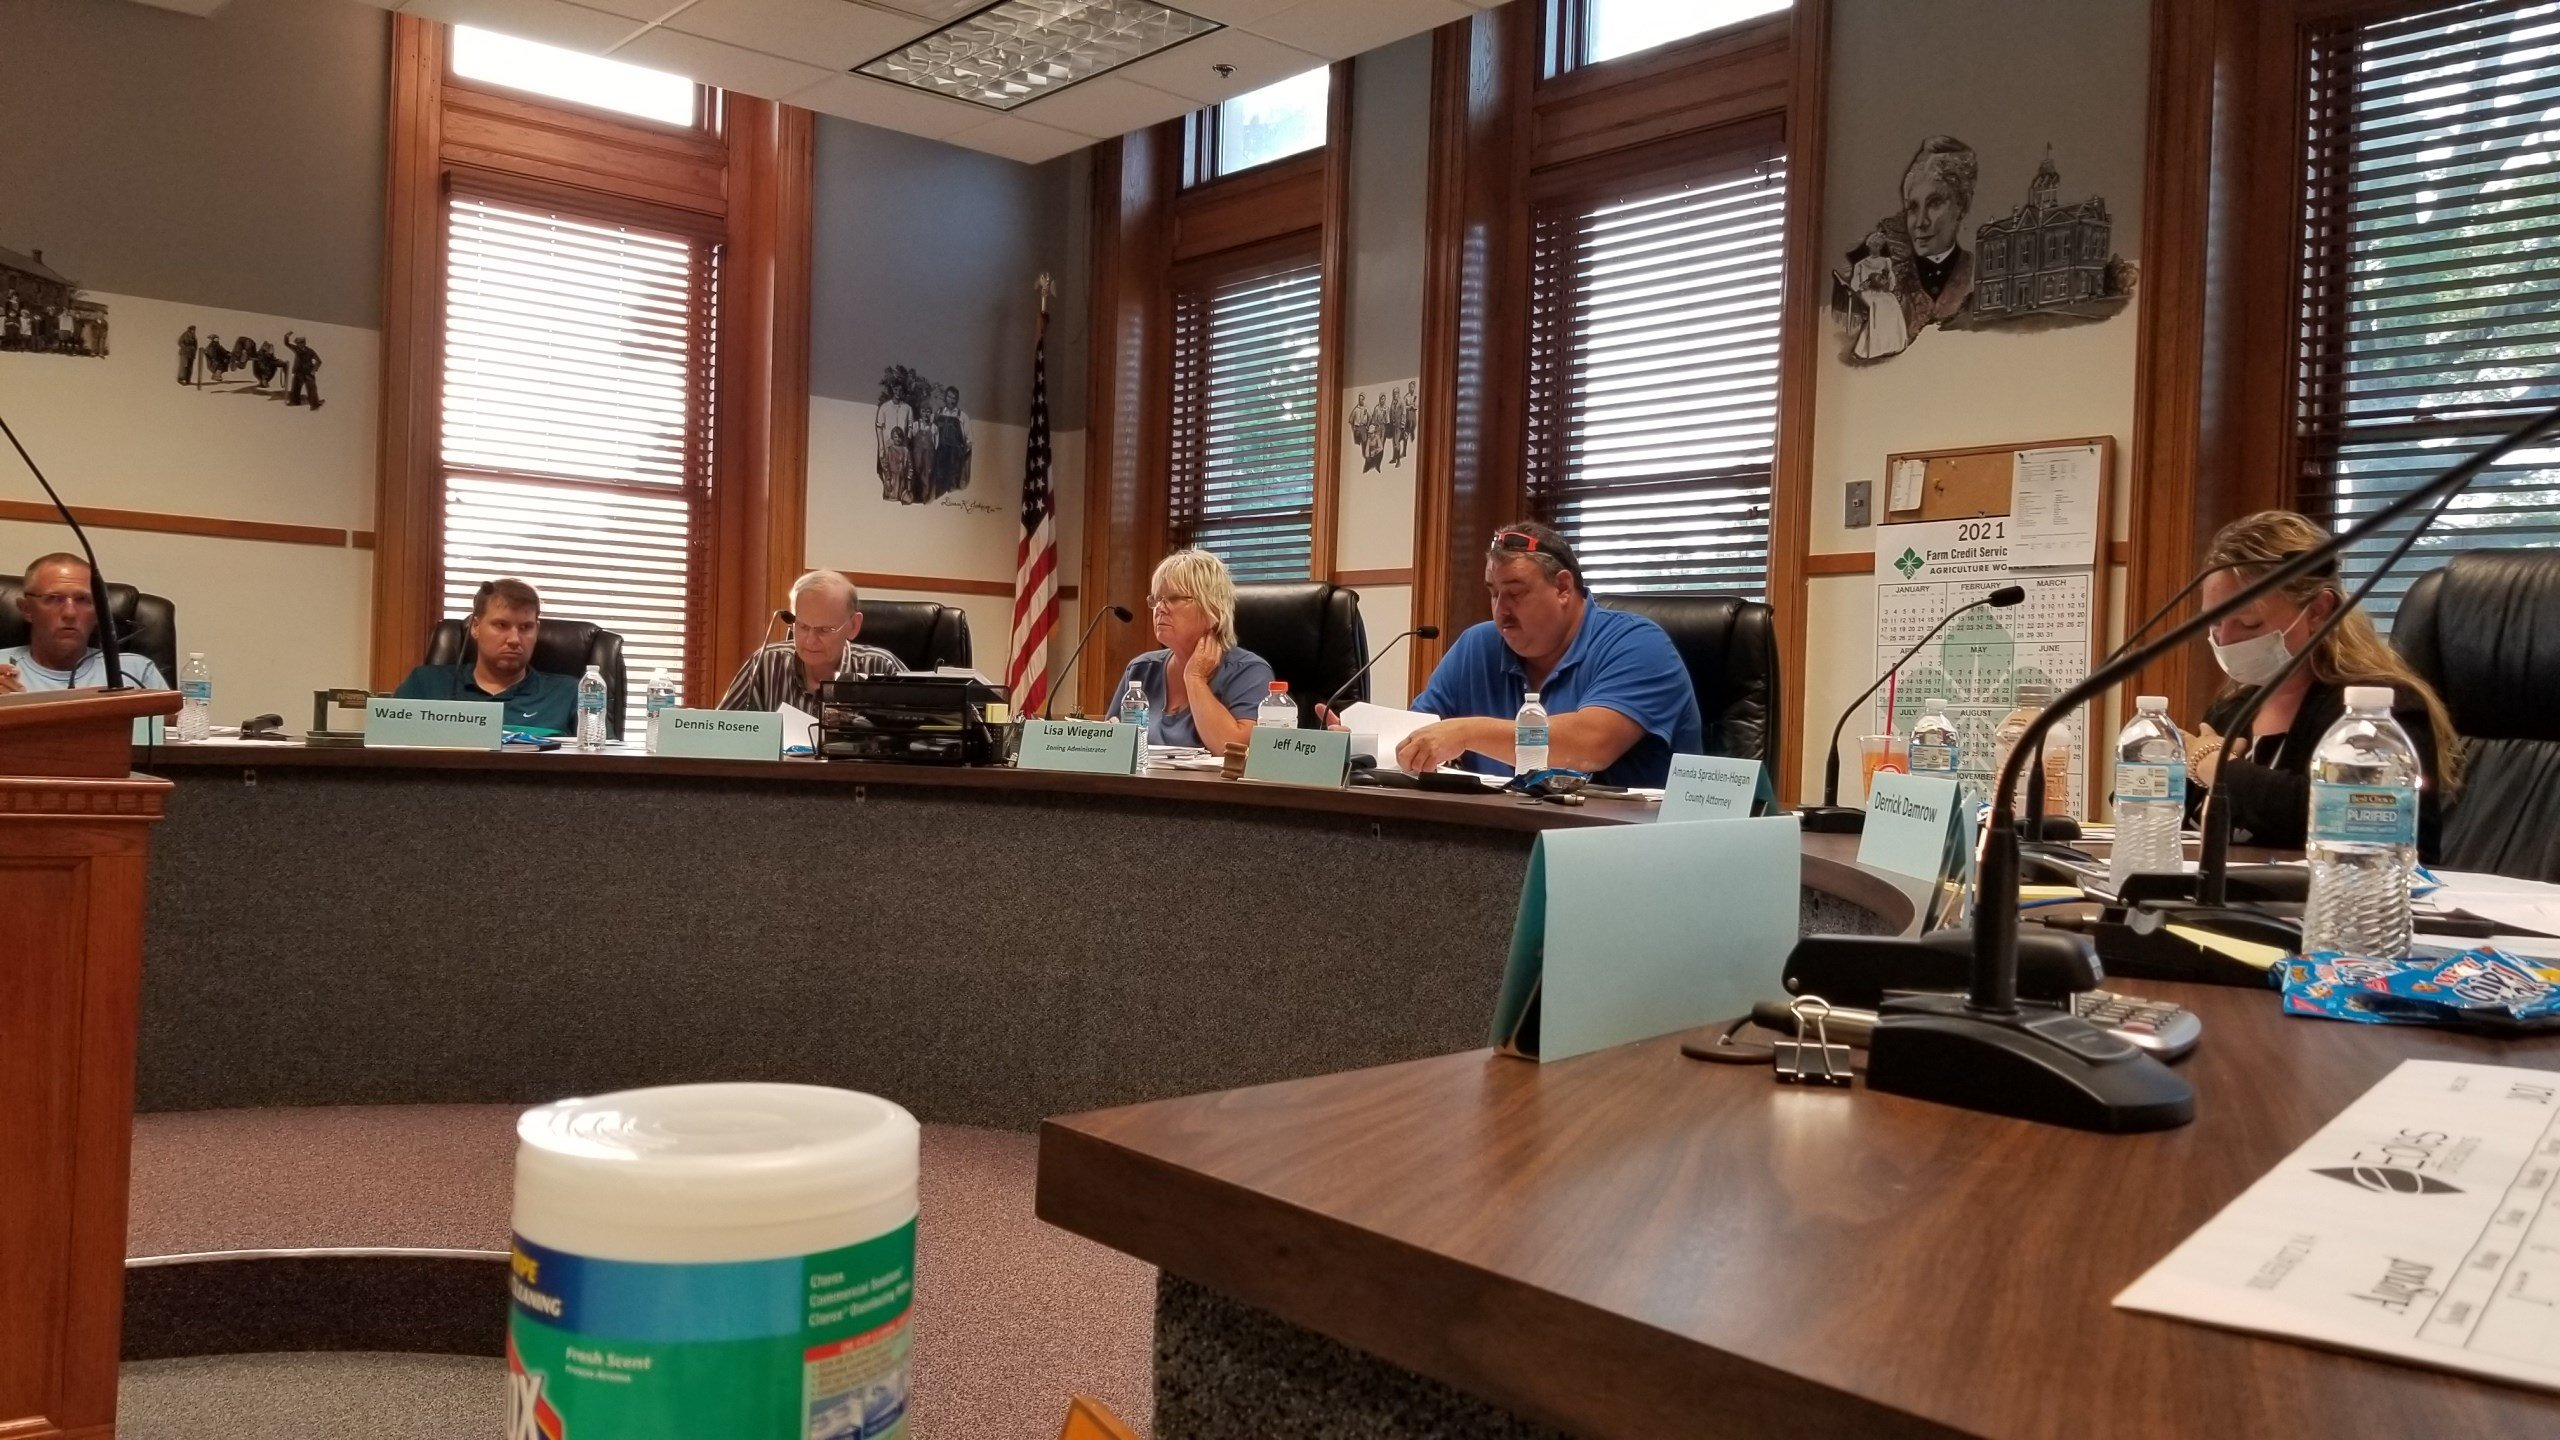 Commercial agronomy plan gets approval of Gage County Planning and Zoning Commission